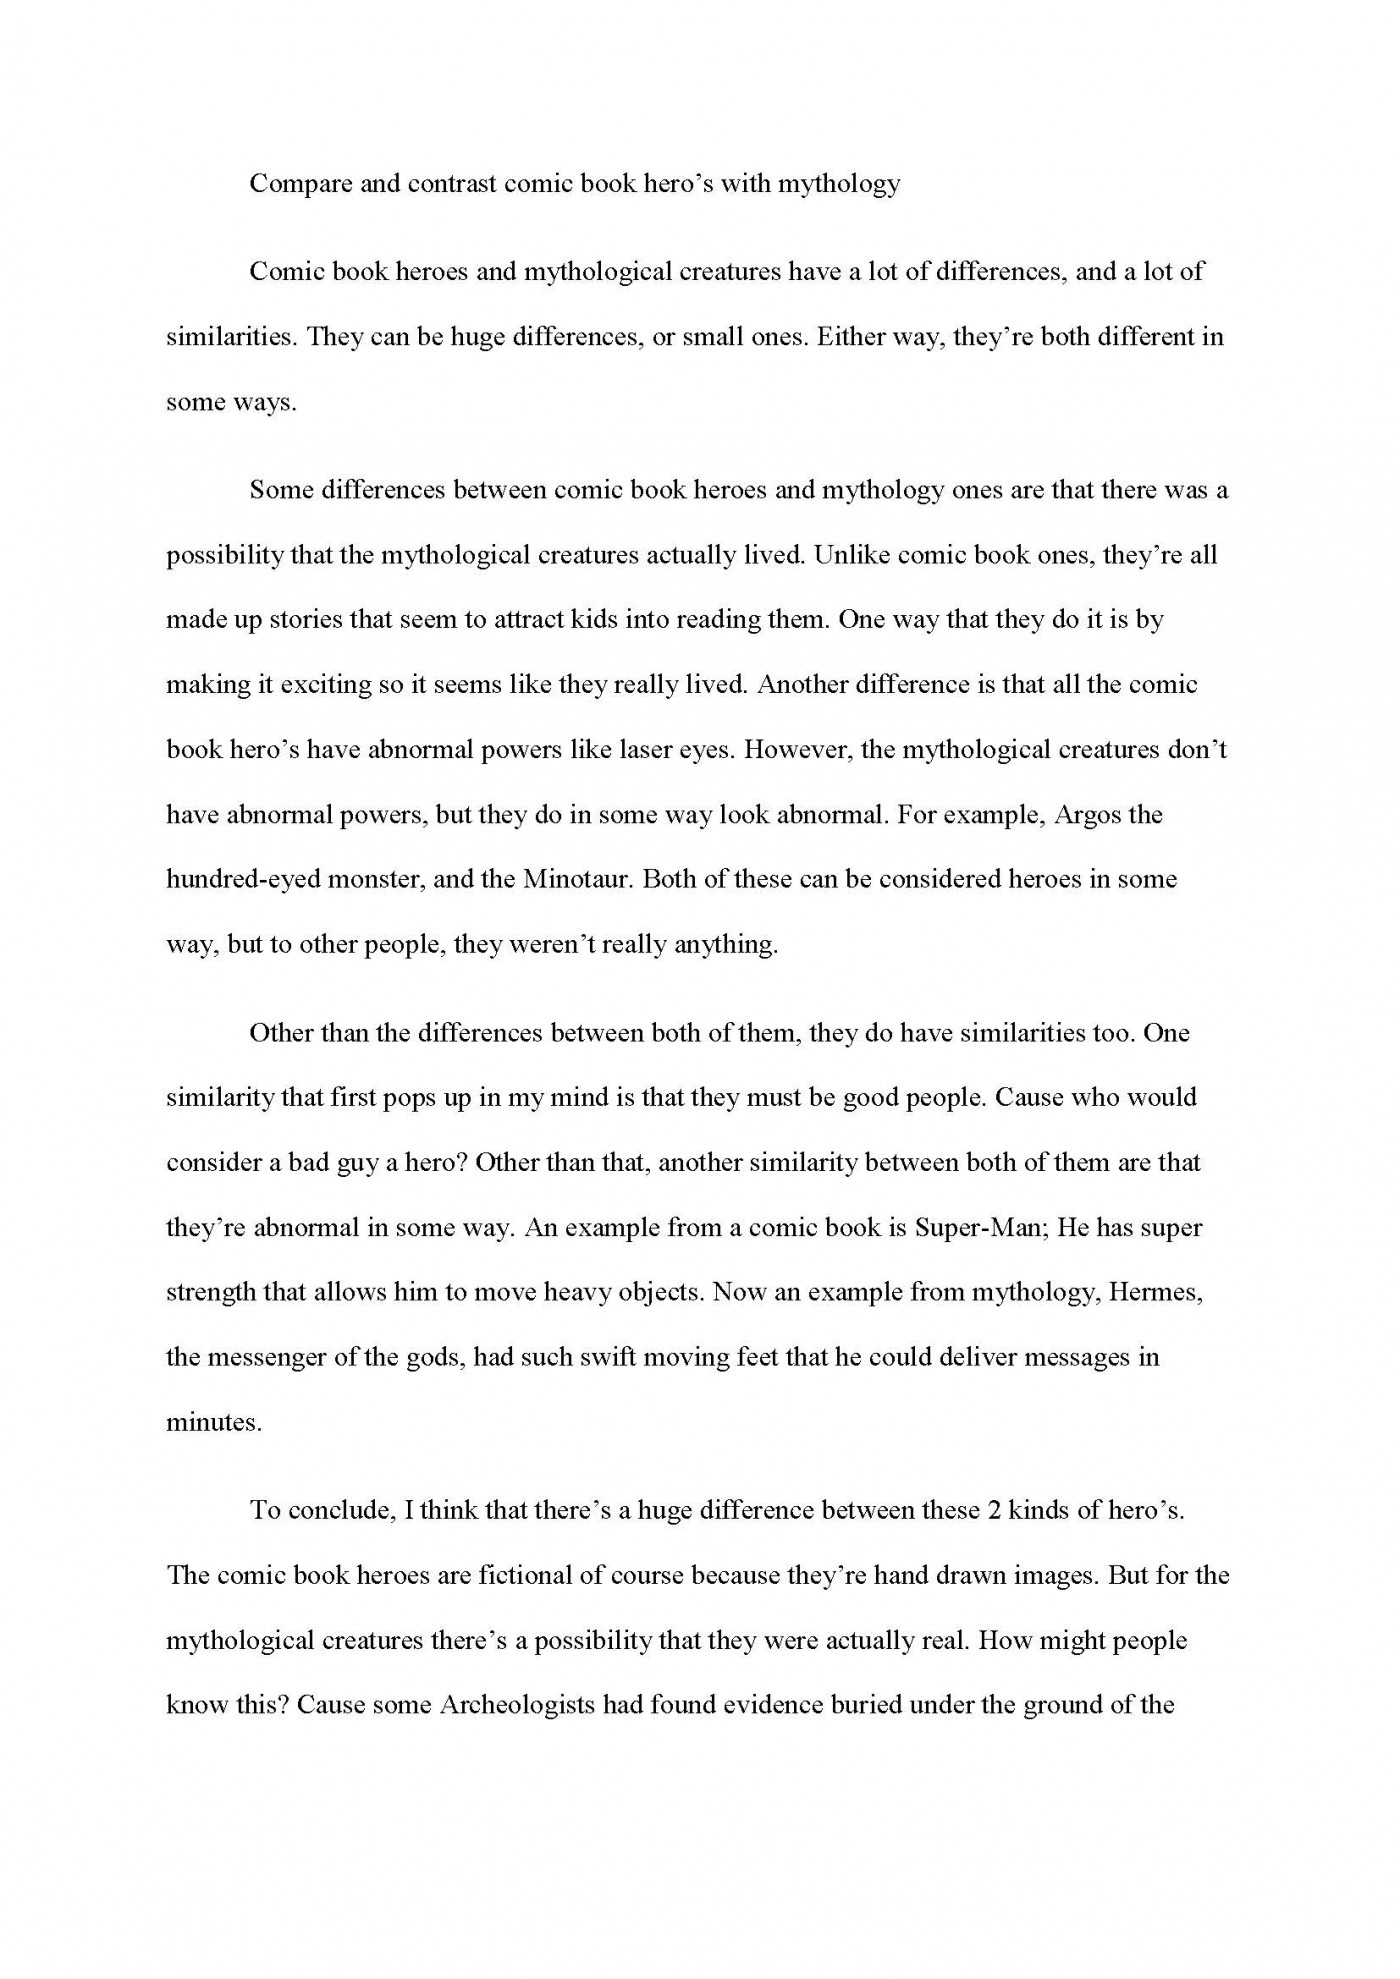 011 Contrast Essay Topics Compare And Sample Astounding Examples High School Middle 1400